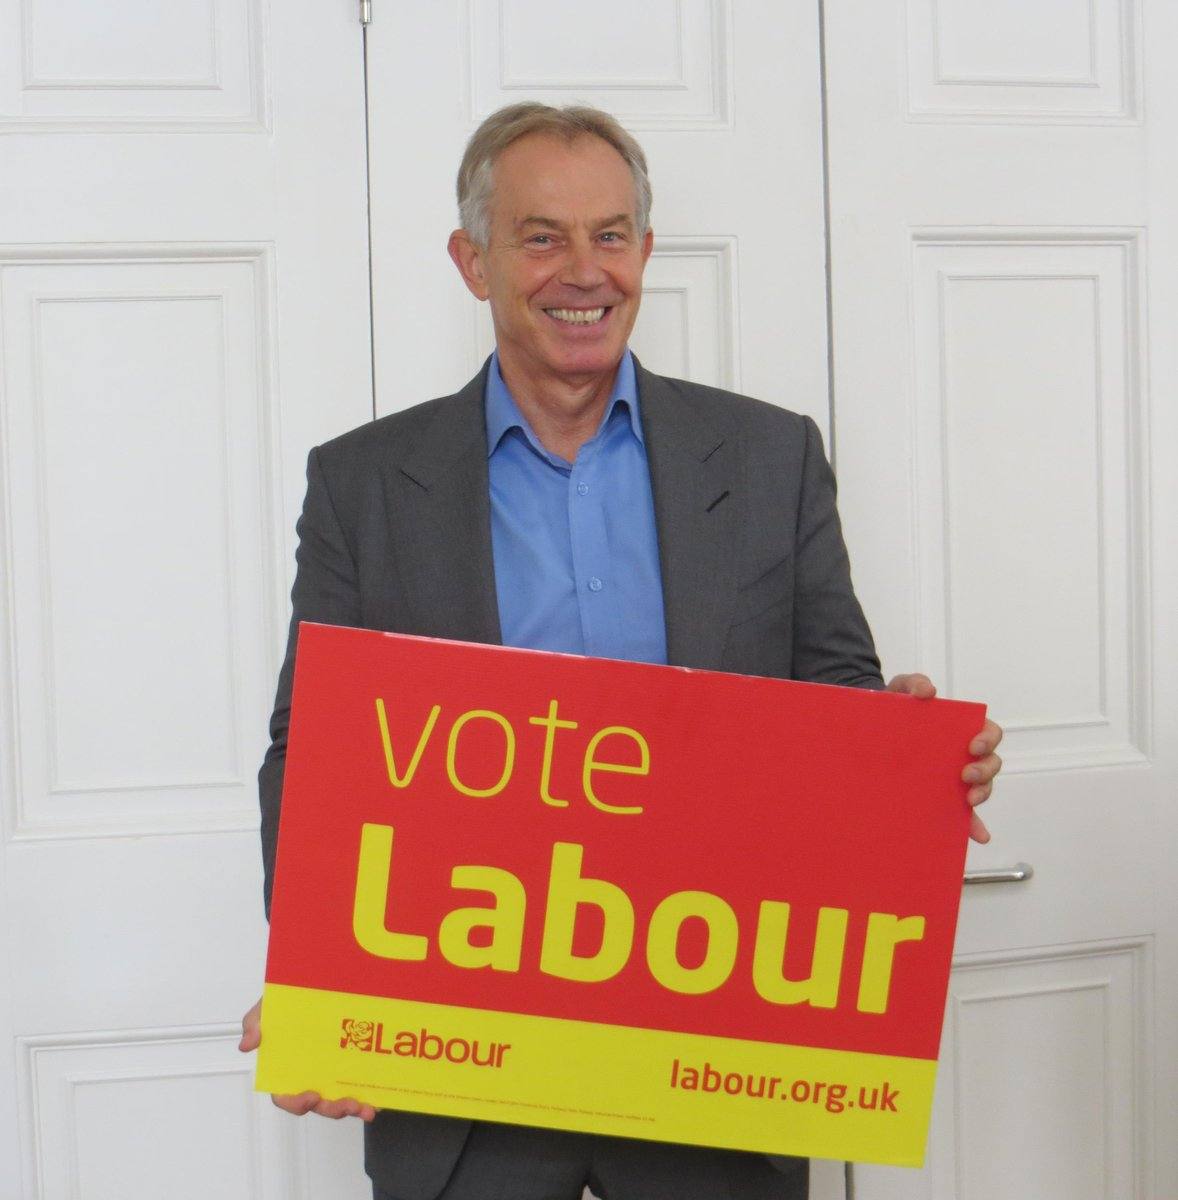 I hope you too will vote #Labour, we need a Labour Govt and Ed in No 10 for a better future for our country. TB http://t.co/oBAnovhpKK